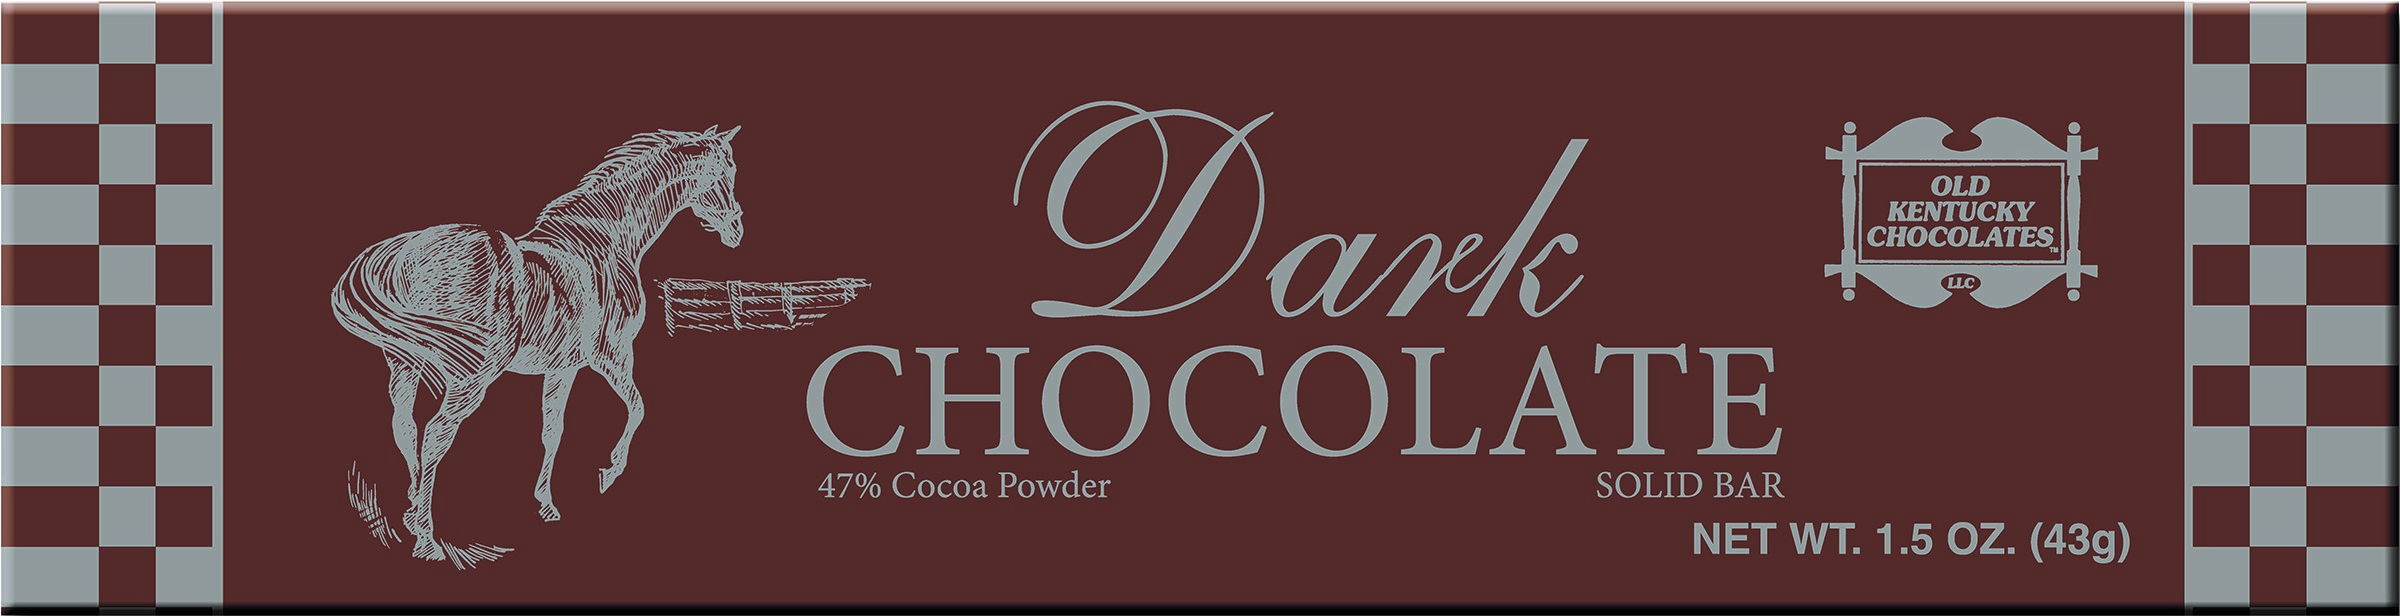 Old Kentucky Chocolates Dark Chocolate Fundraising